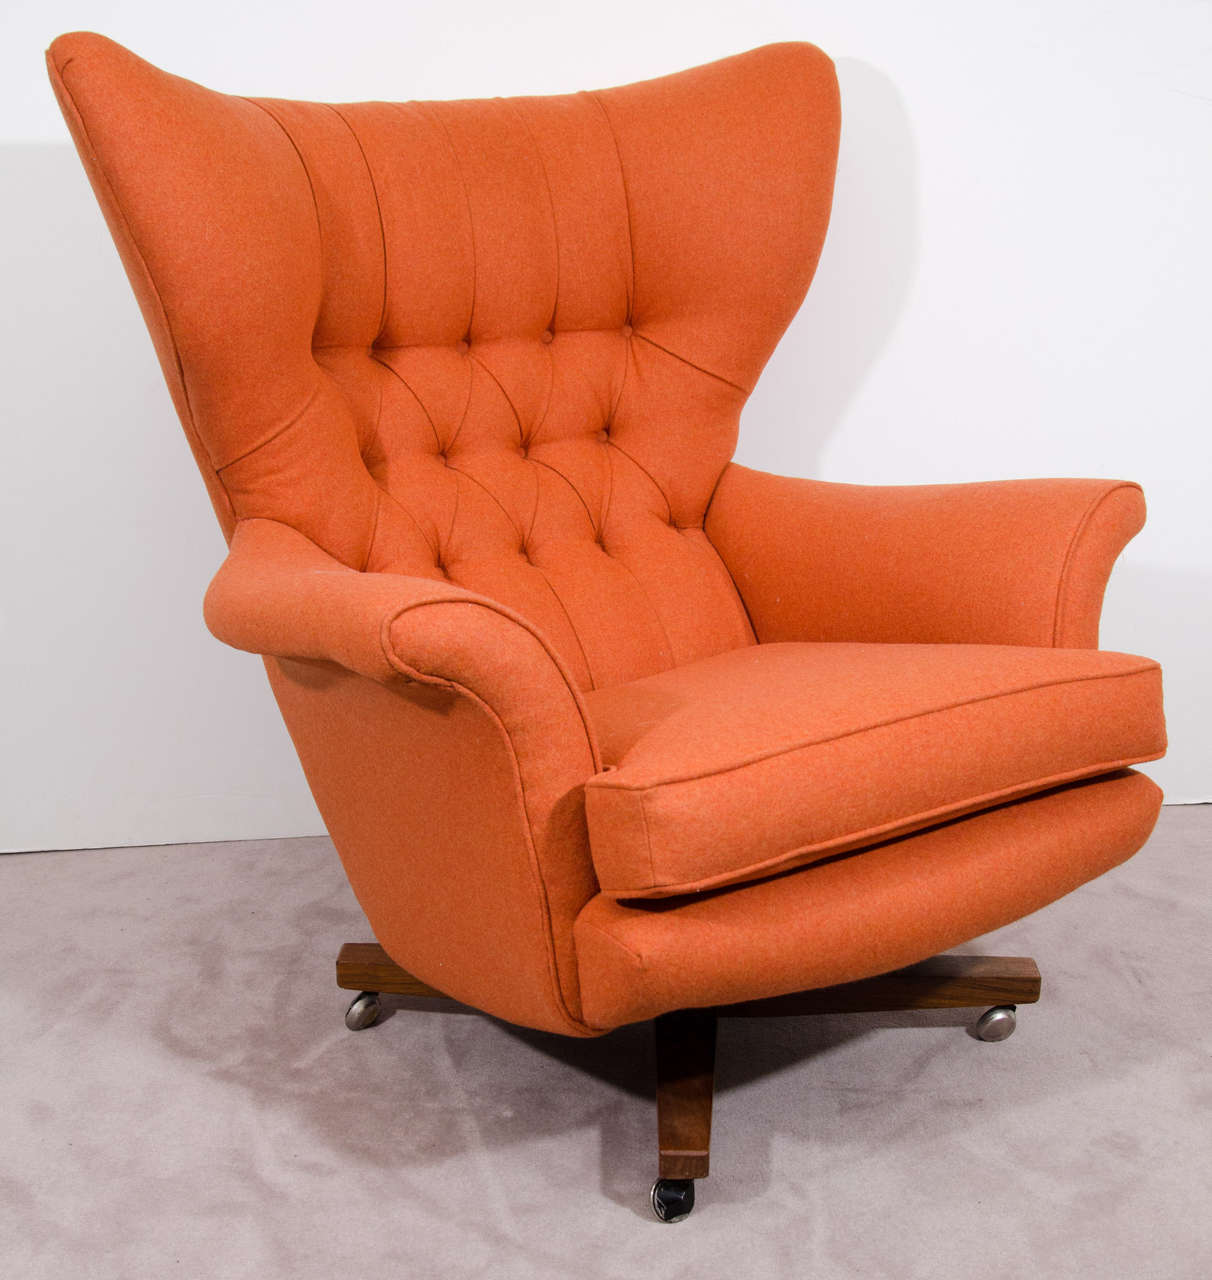 Mid Century Wing Back Lounge Chair by Paul Conti at 1stdibs